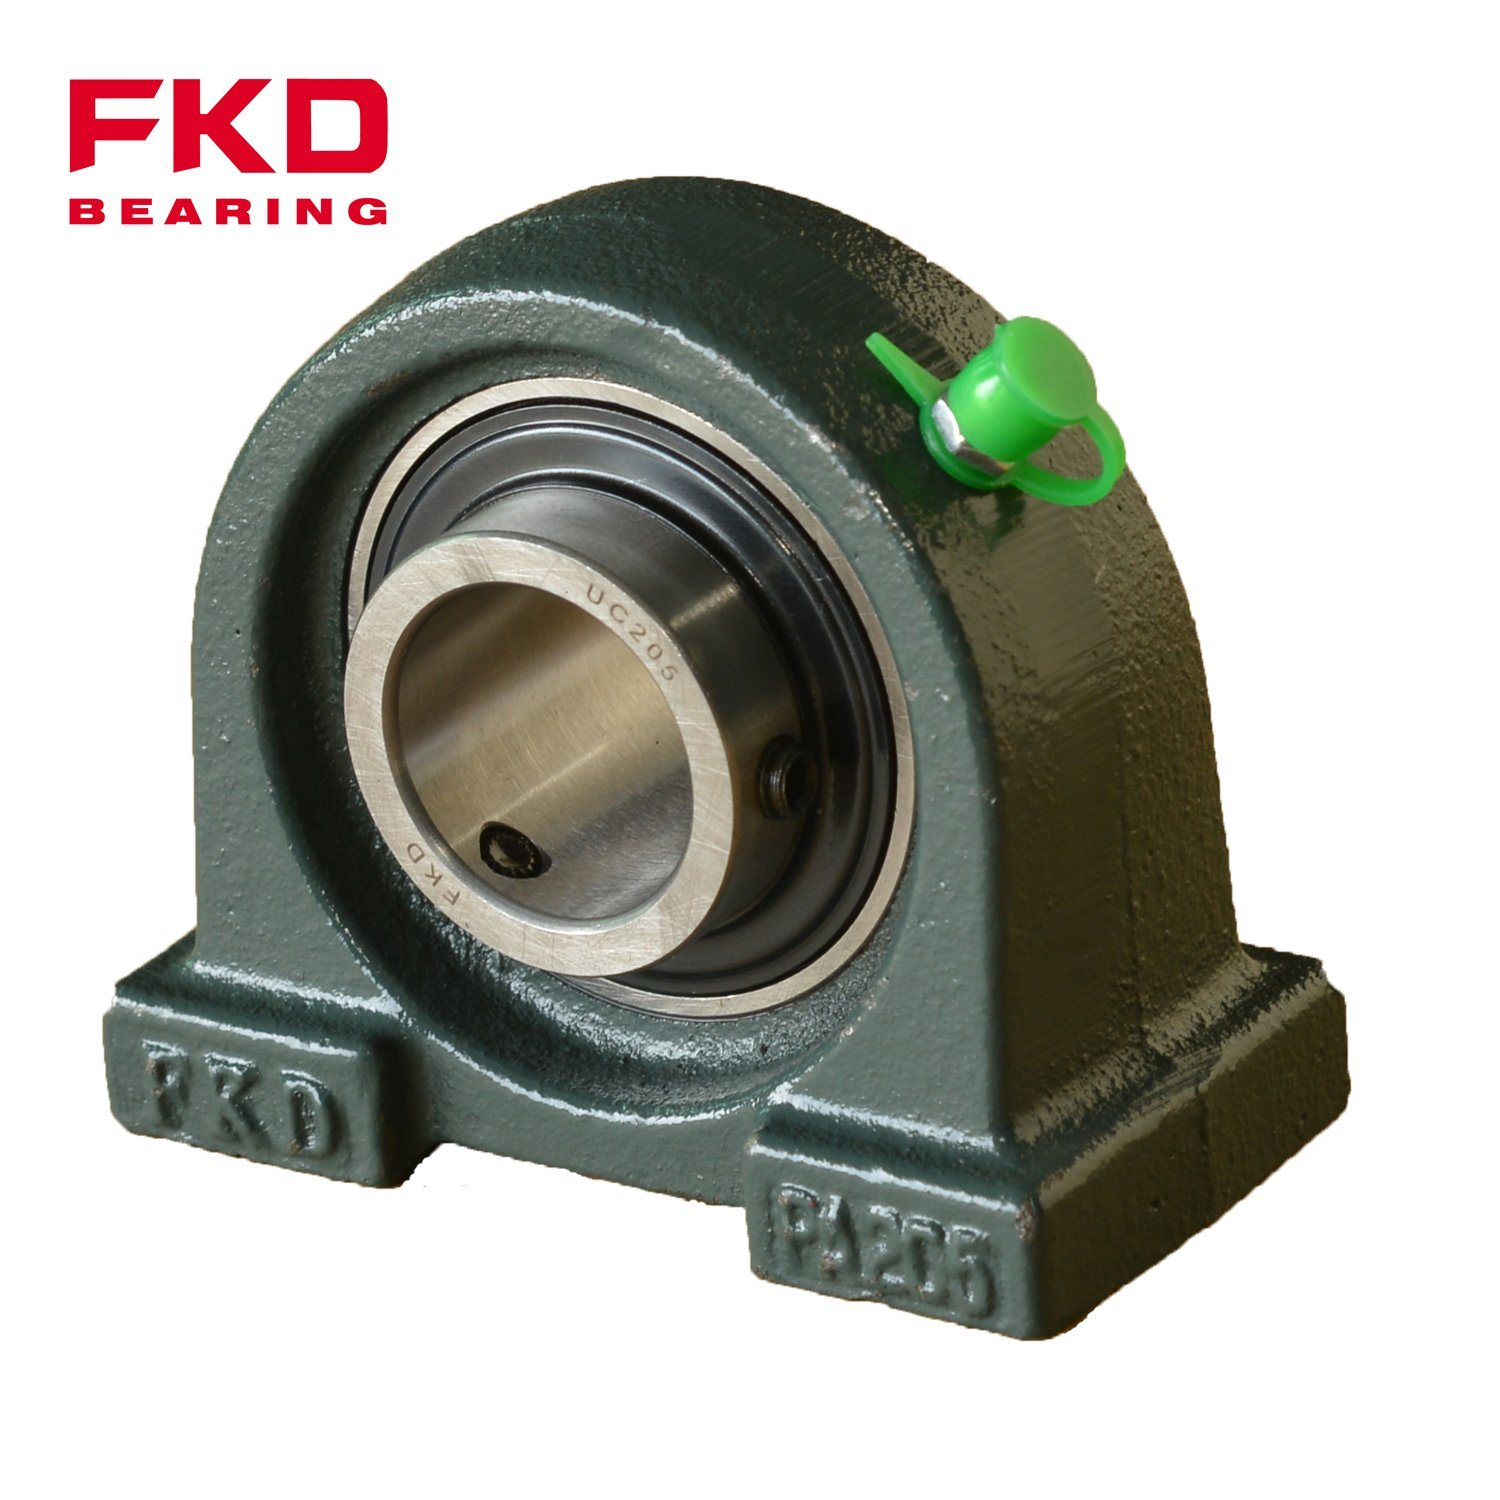 Bearing Machine Heavy Pillow Blocks Machinery Bearings Pillow Block Bearings Insert Bearings Bearings Bearing Ucpa200 Series Ucp 200 Series And 300 Series